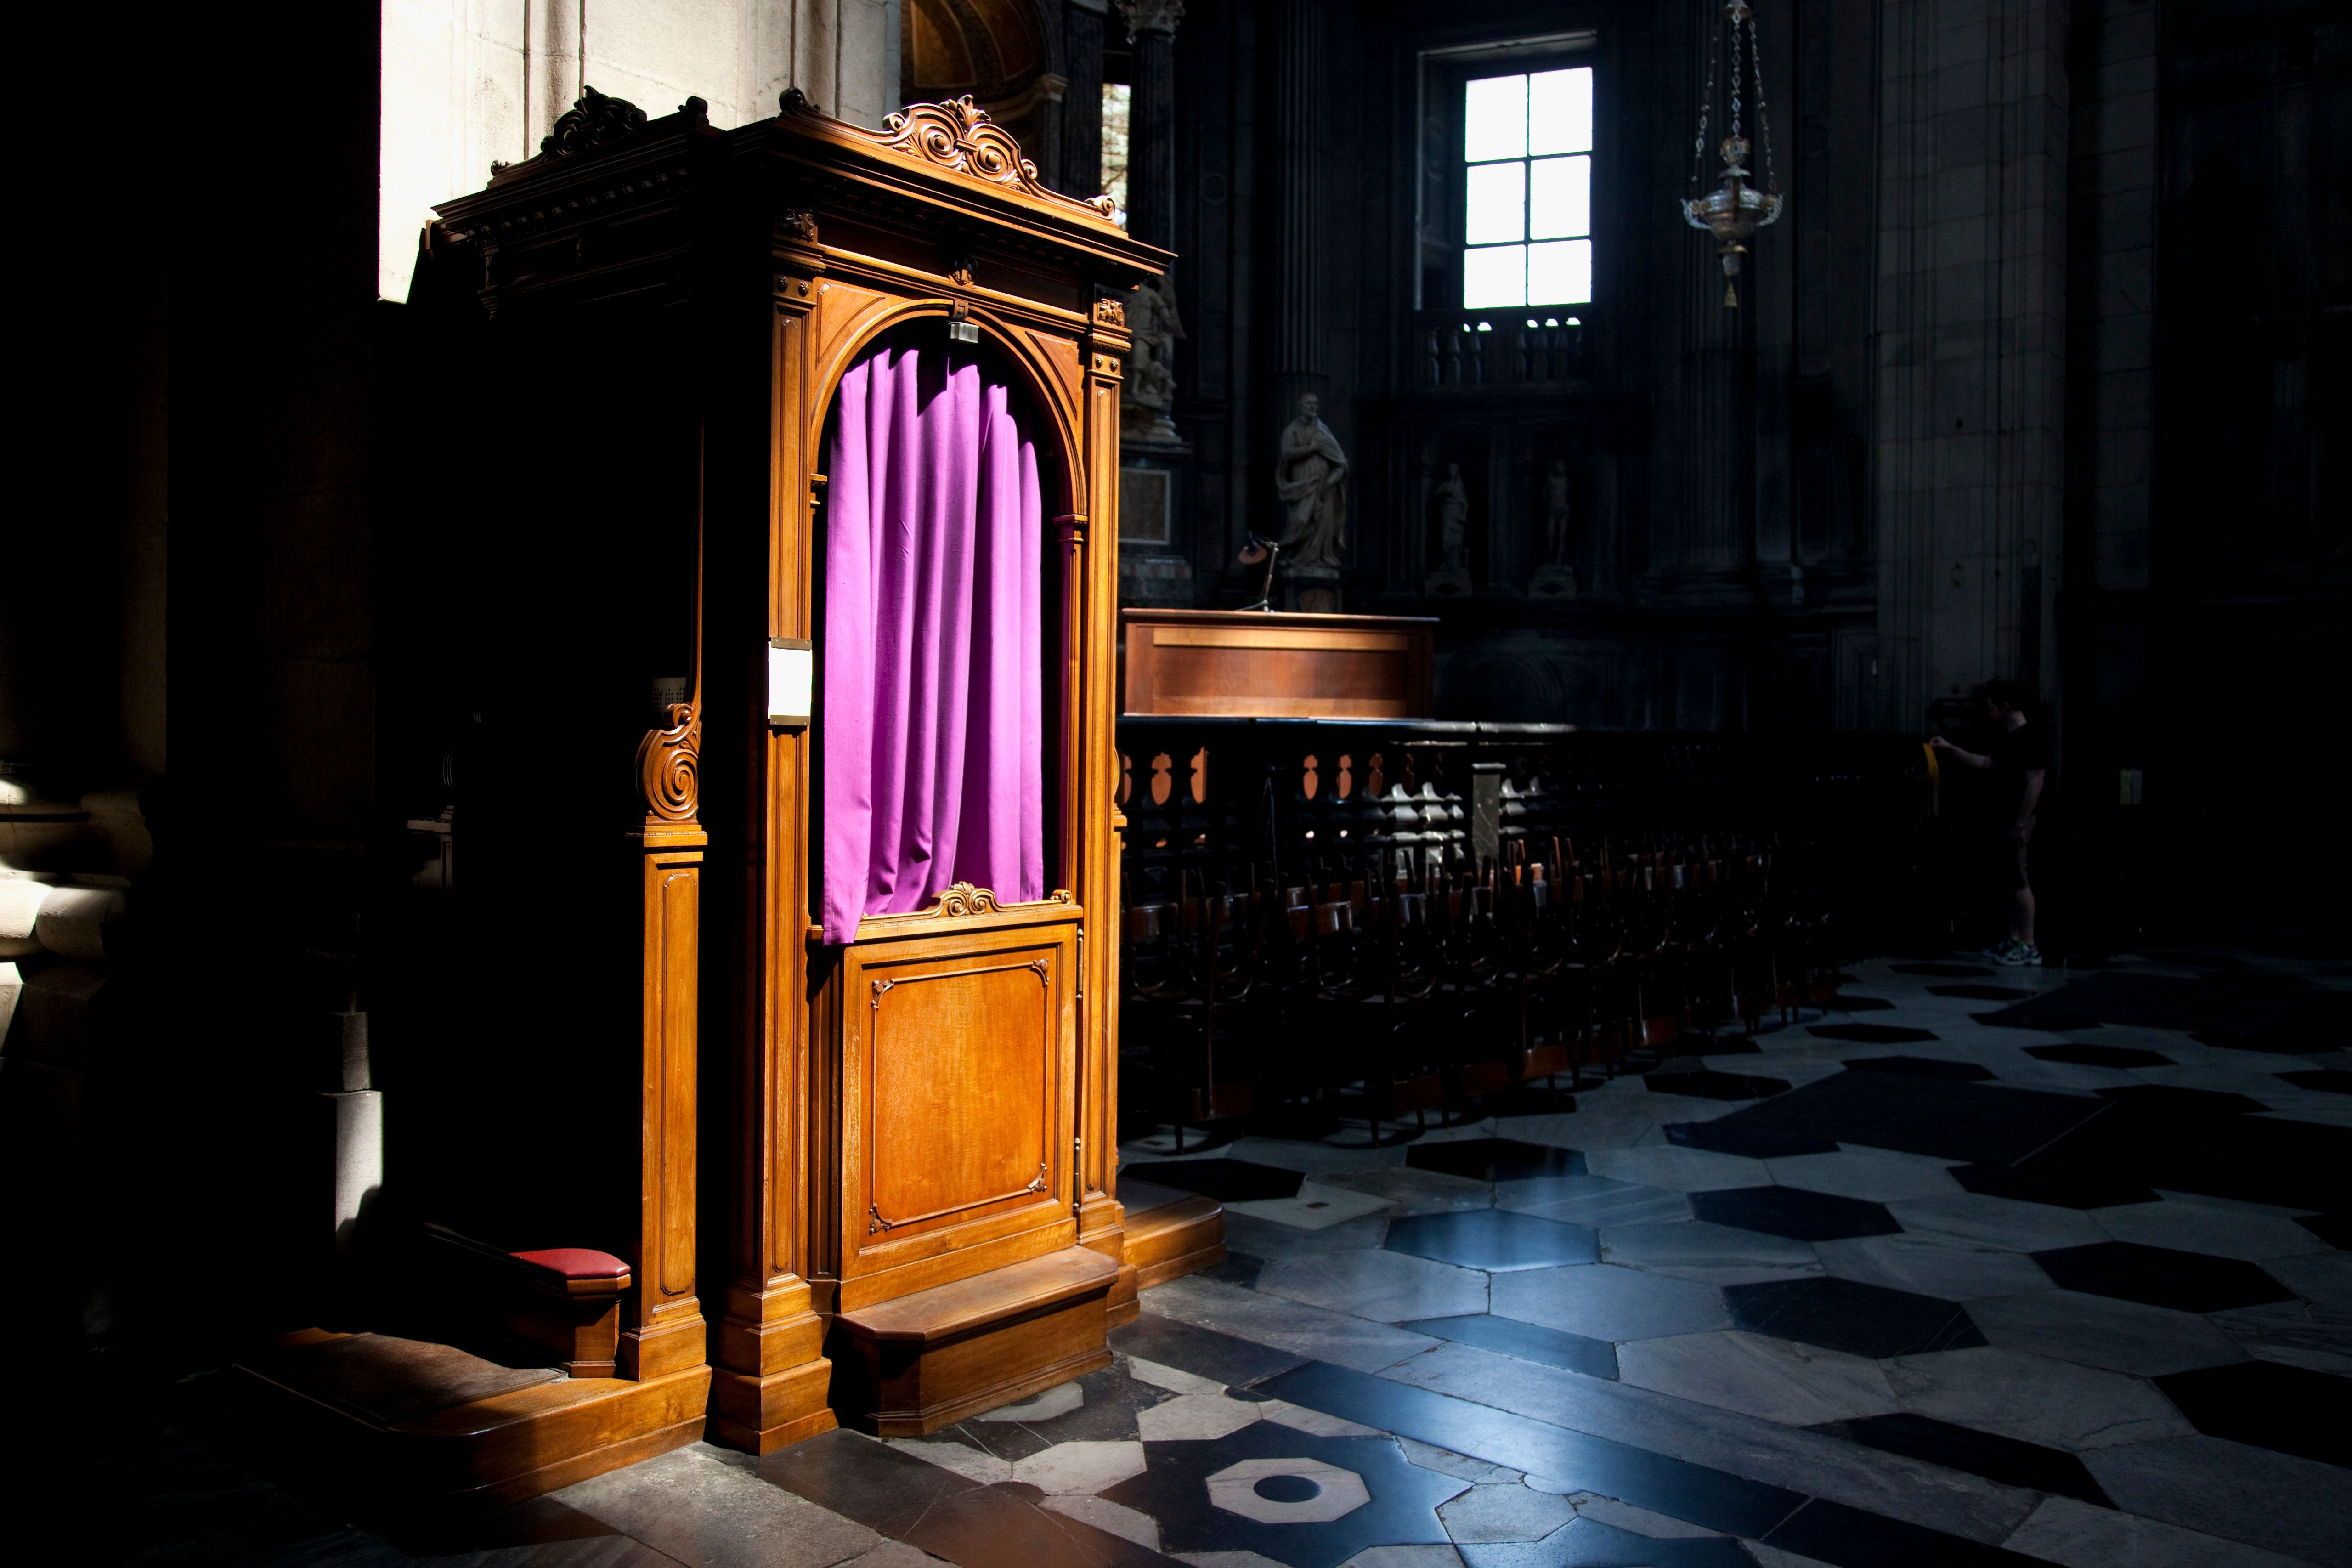 Italy, Lombardy, Lakes Region, Lake Como, Como, Duomo cathedral, confessional booth